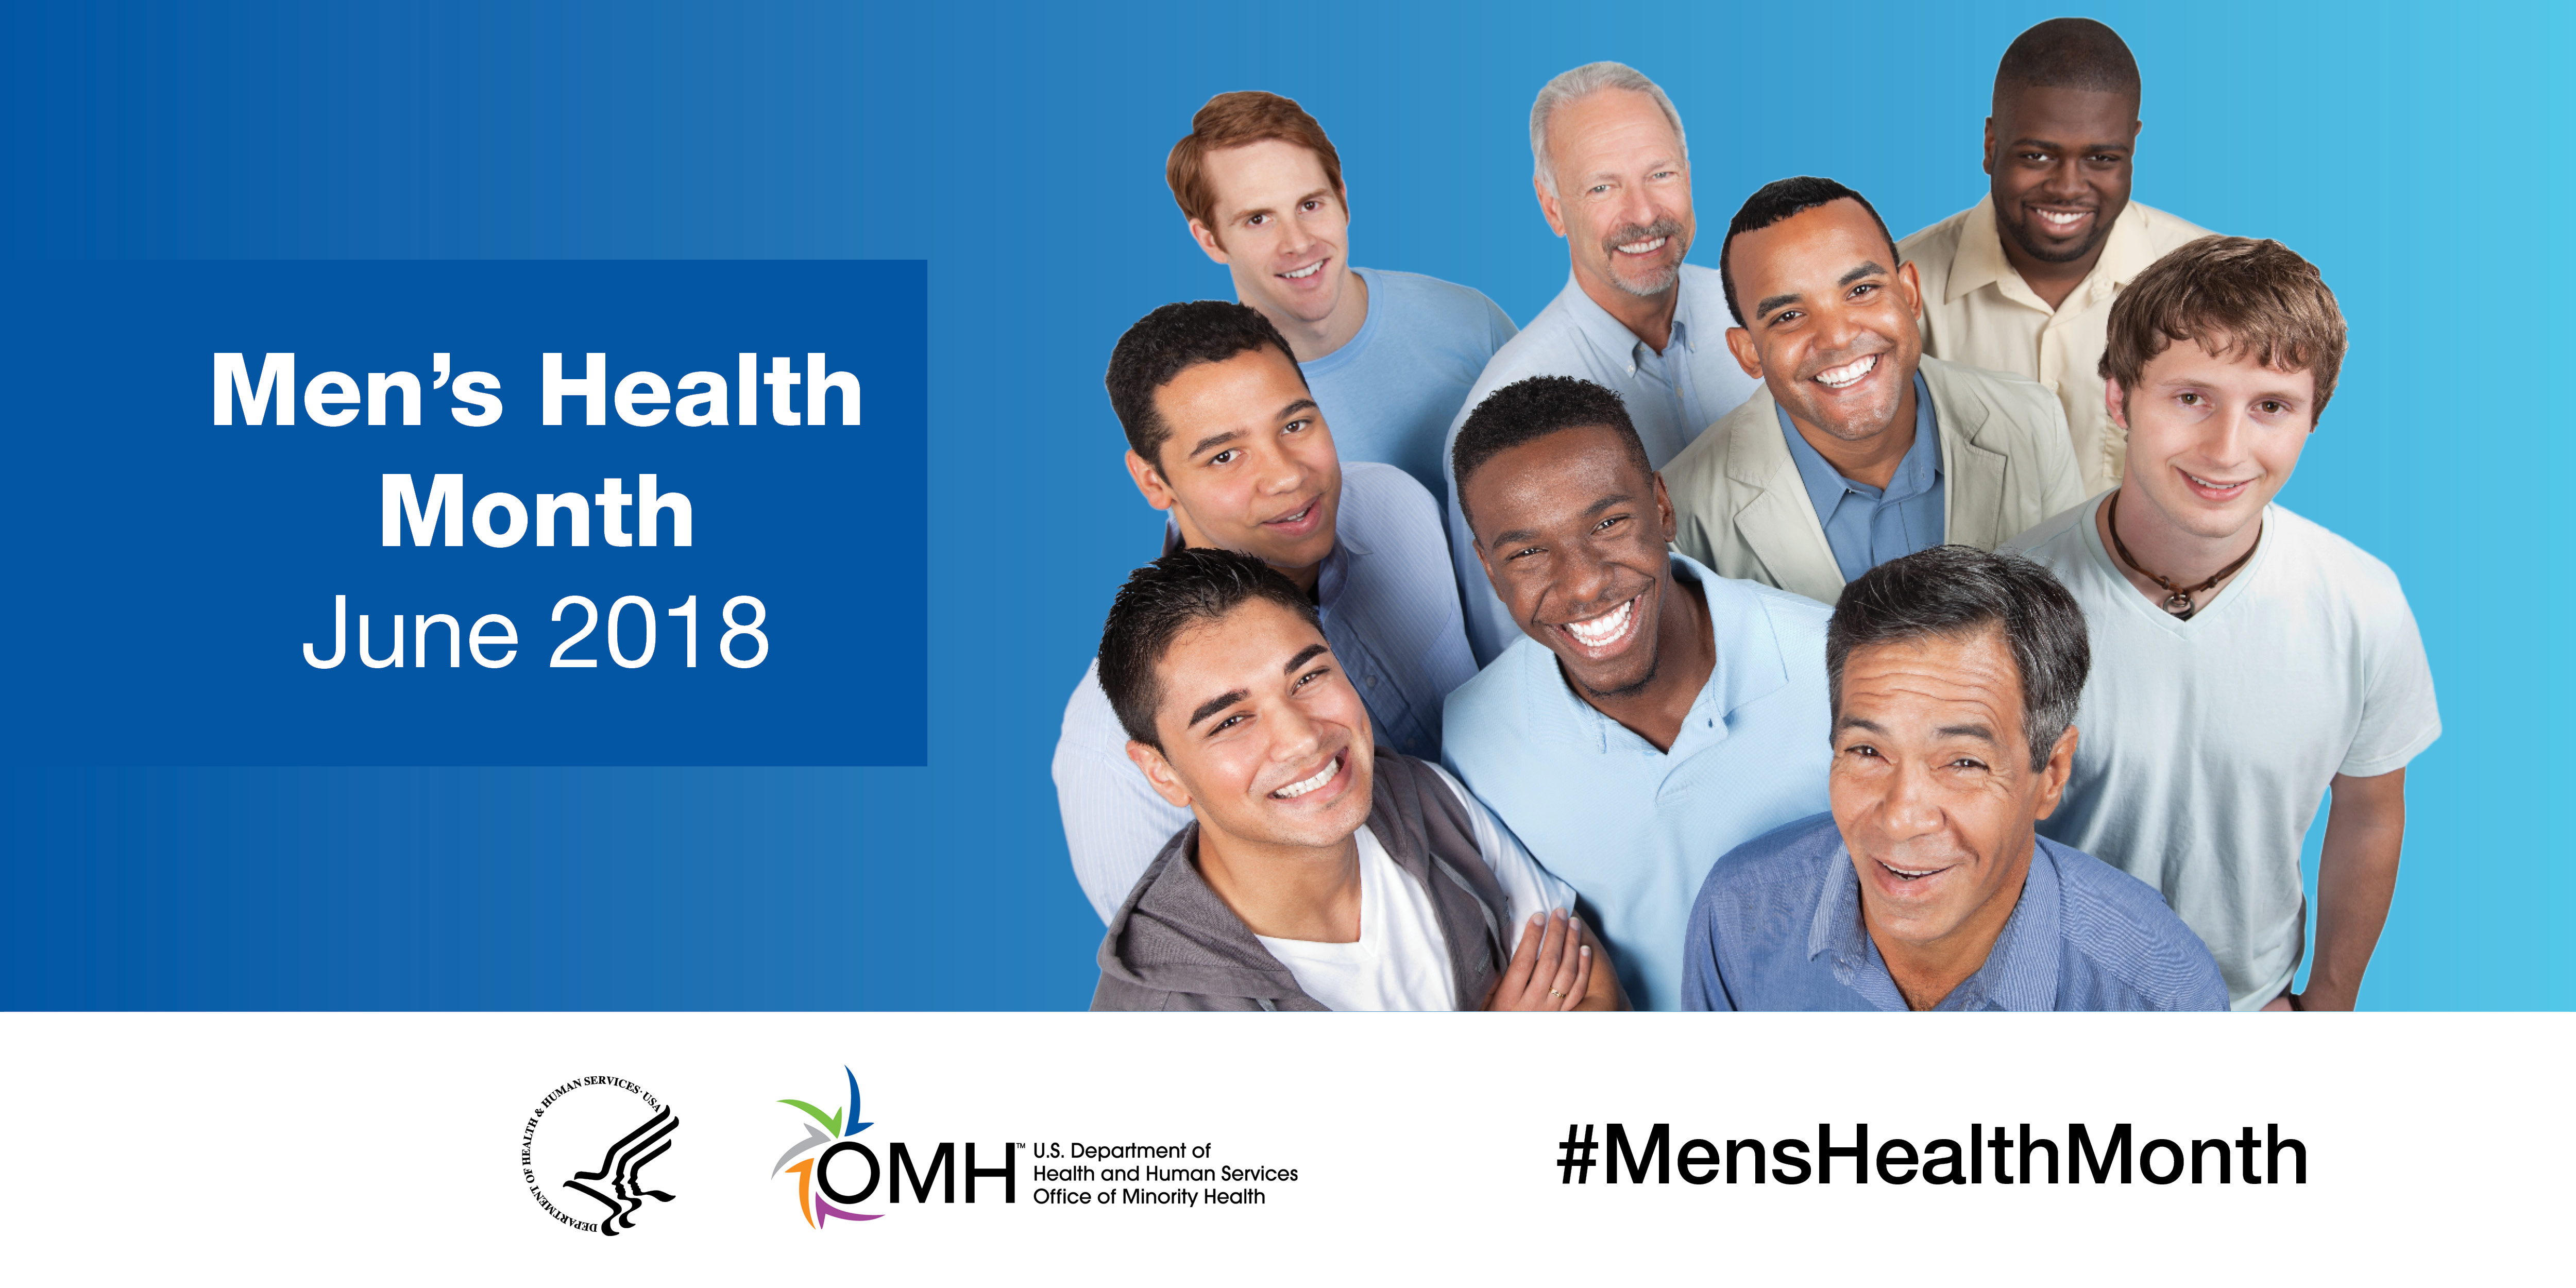 WHO IS TALKING ABOUT MEN'S HEALTH?